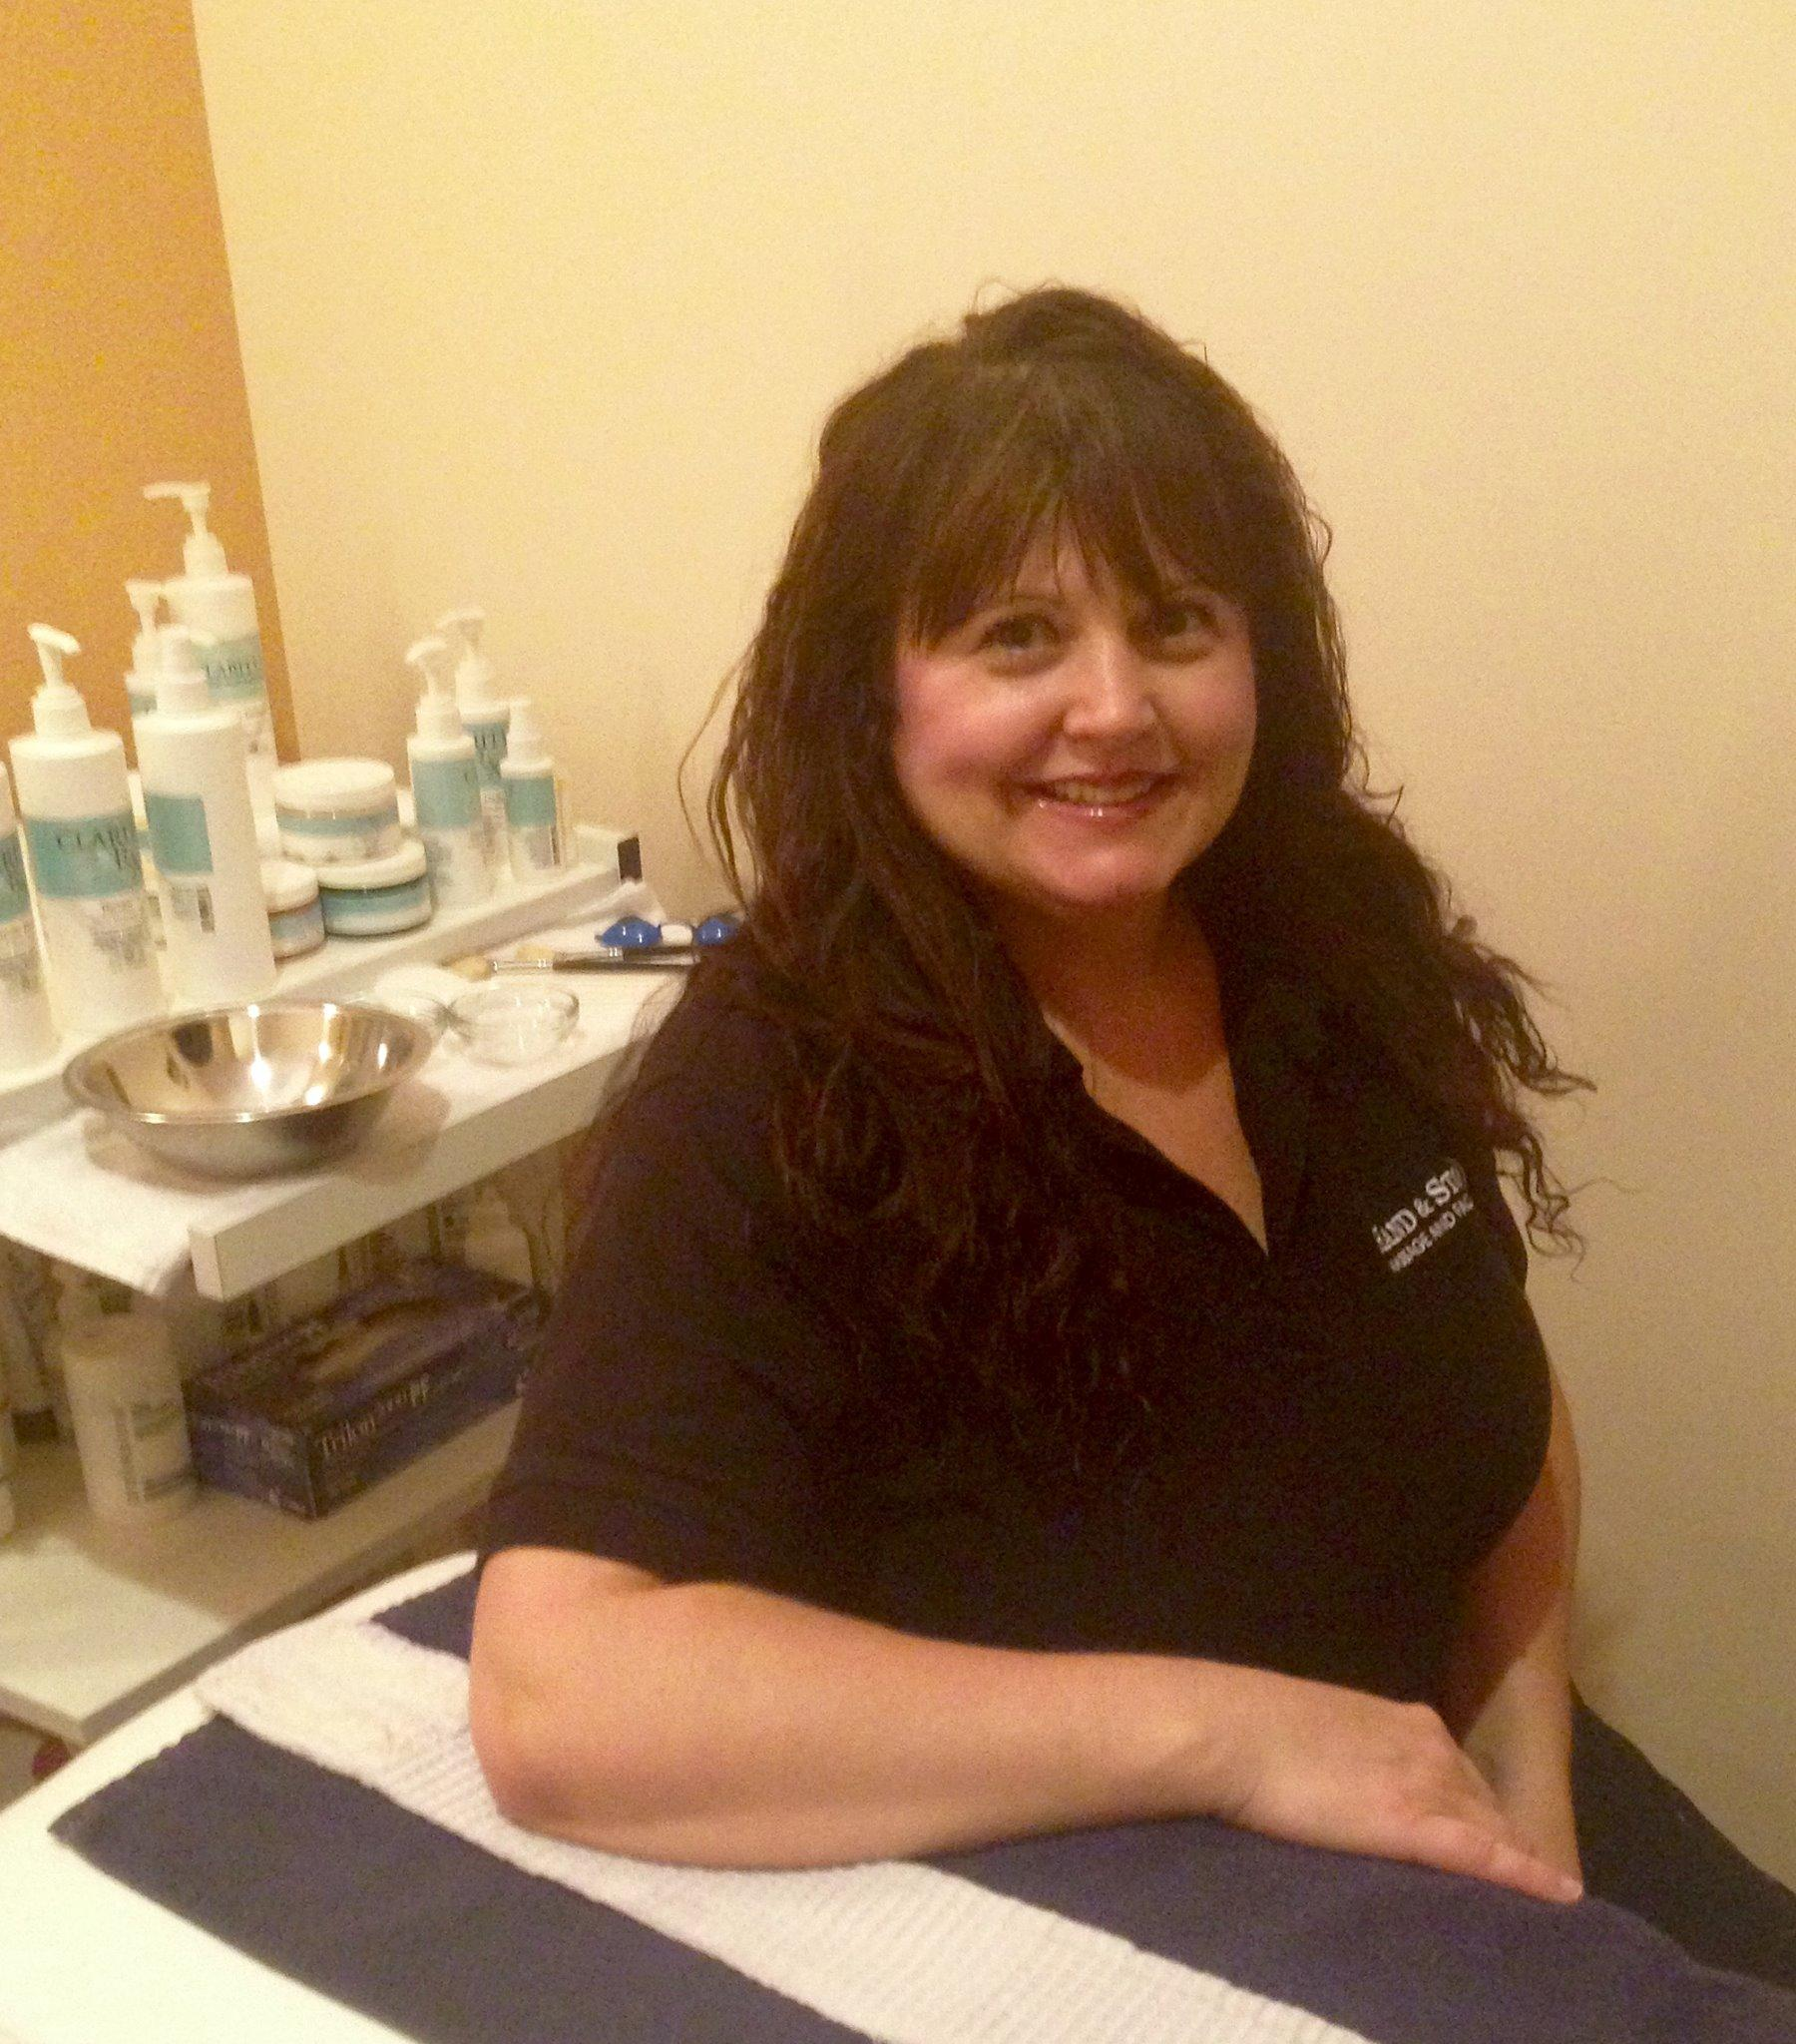 Margaret was the third Esthetician in the State of Virginia to become a licensed Master Esthetician